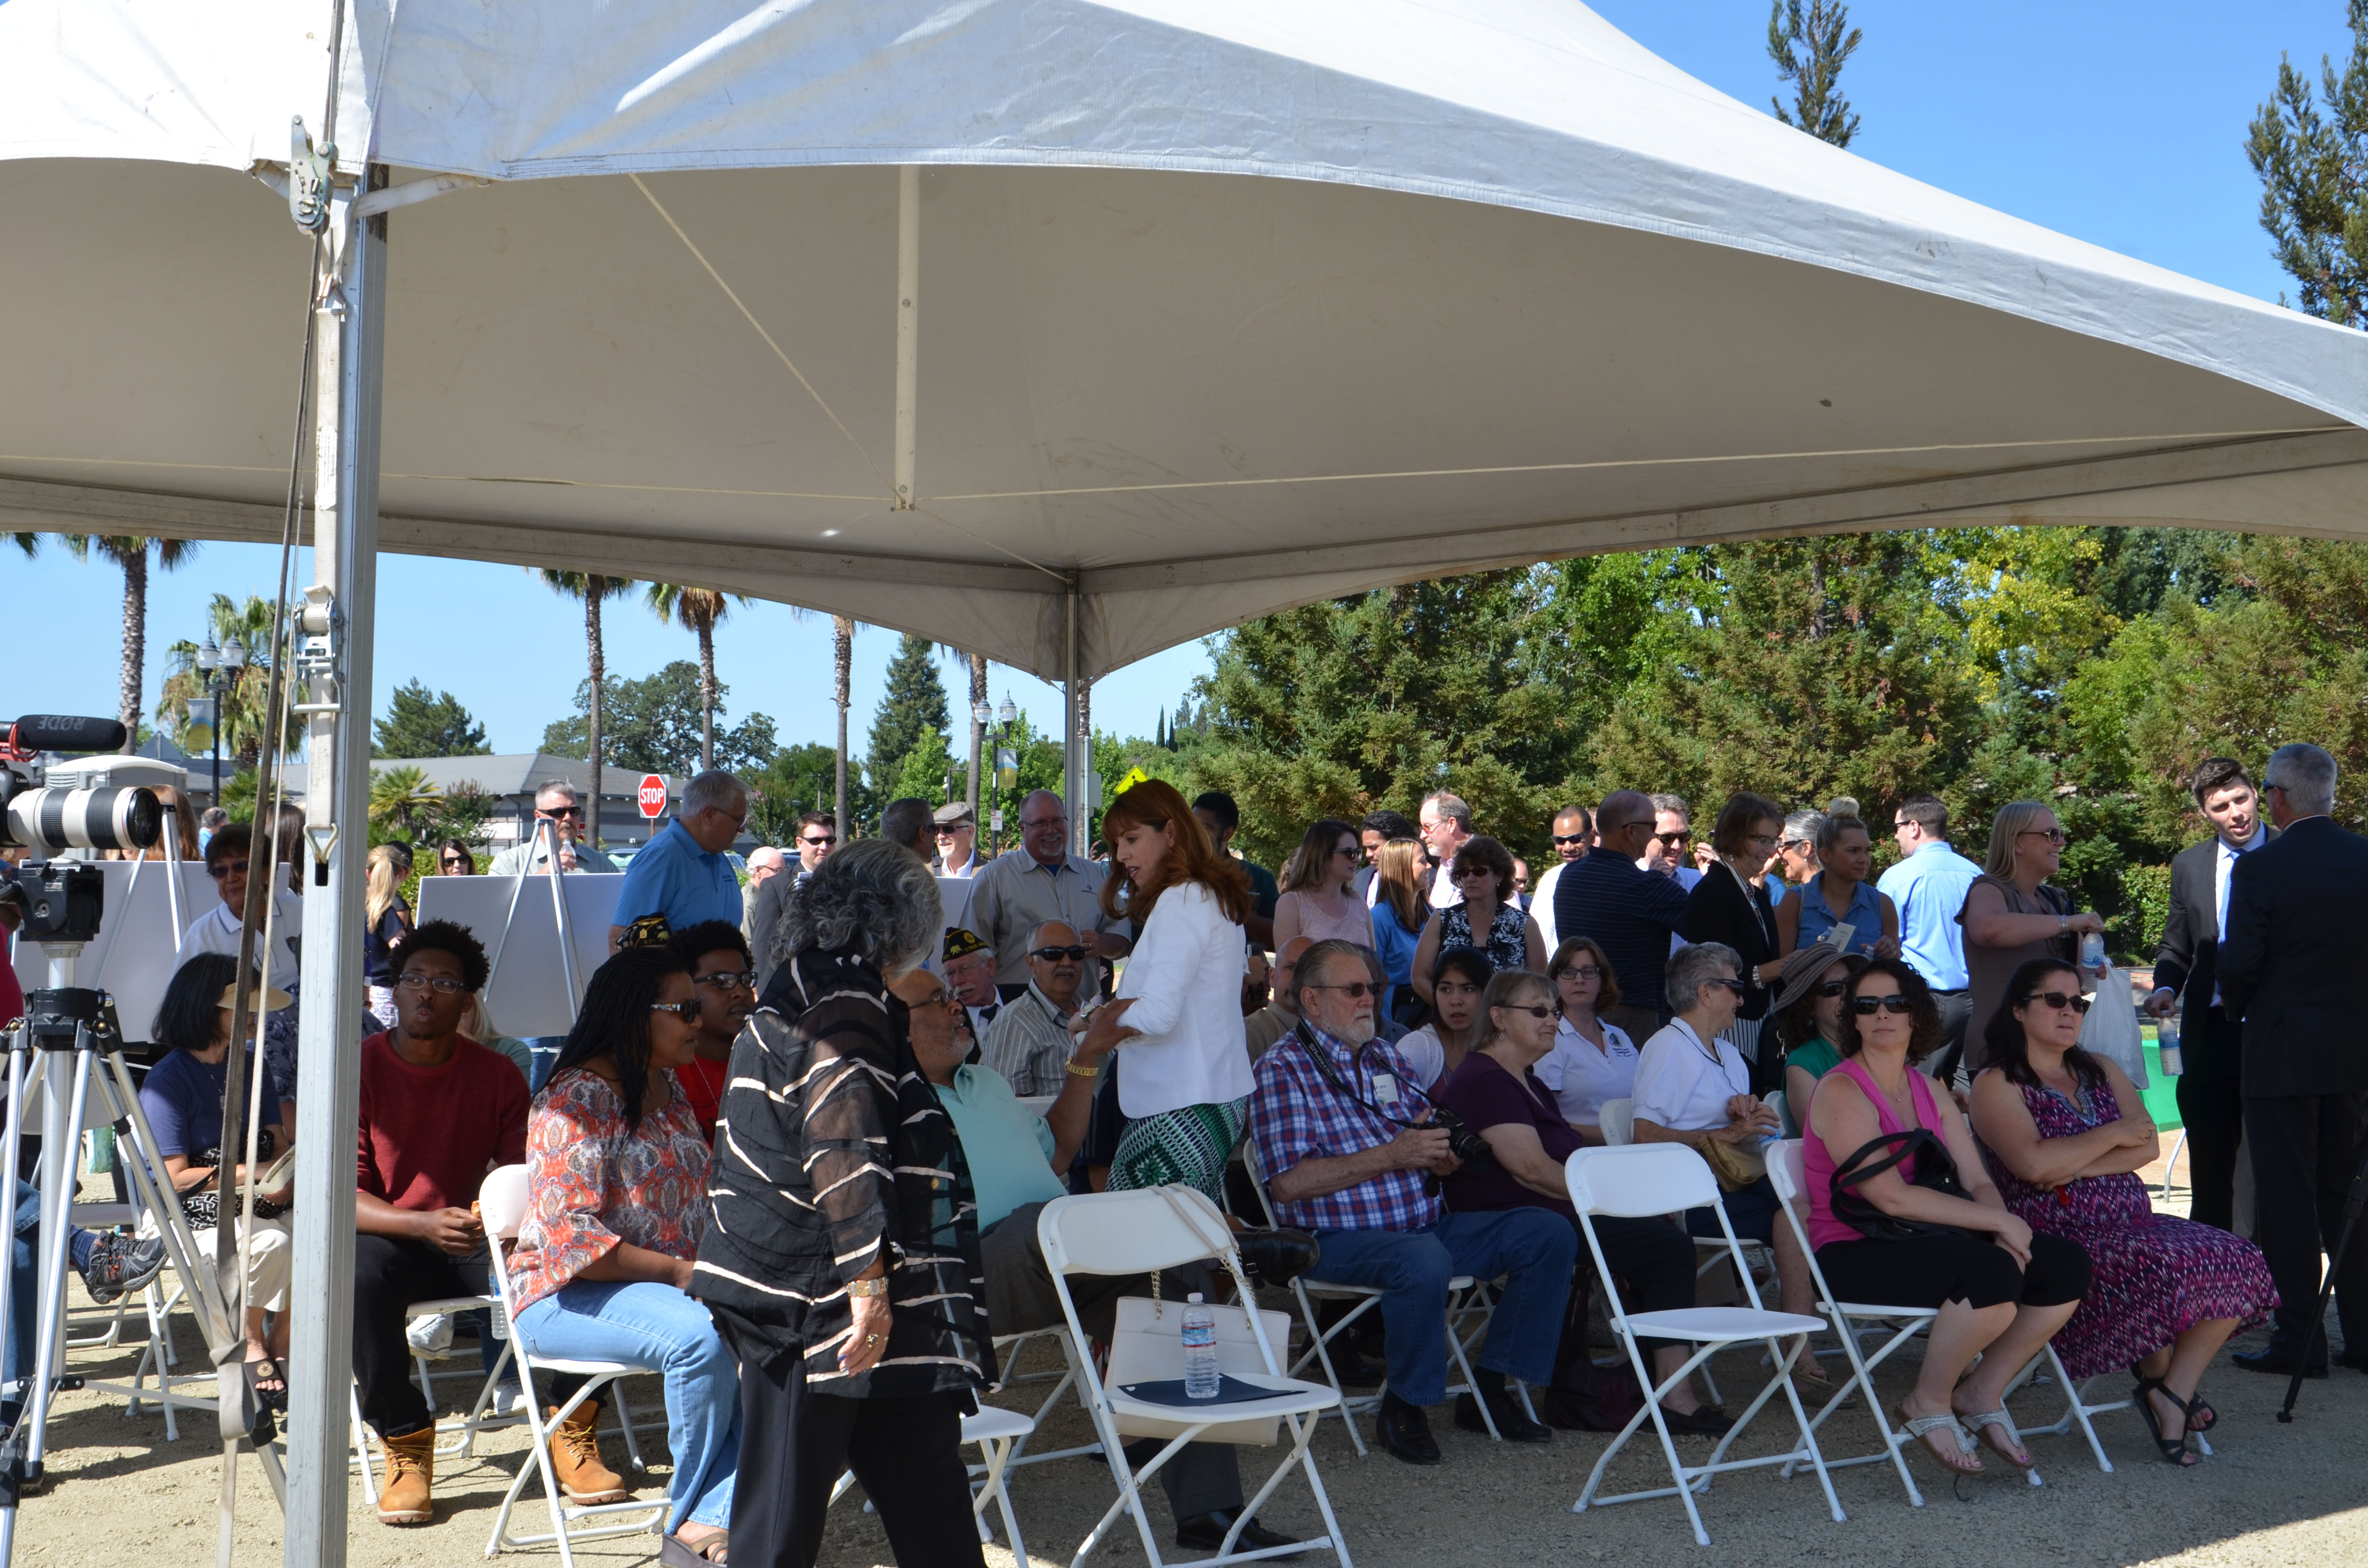 The community gathers under a tent for the ceremony